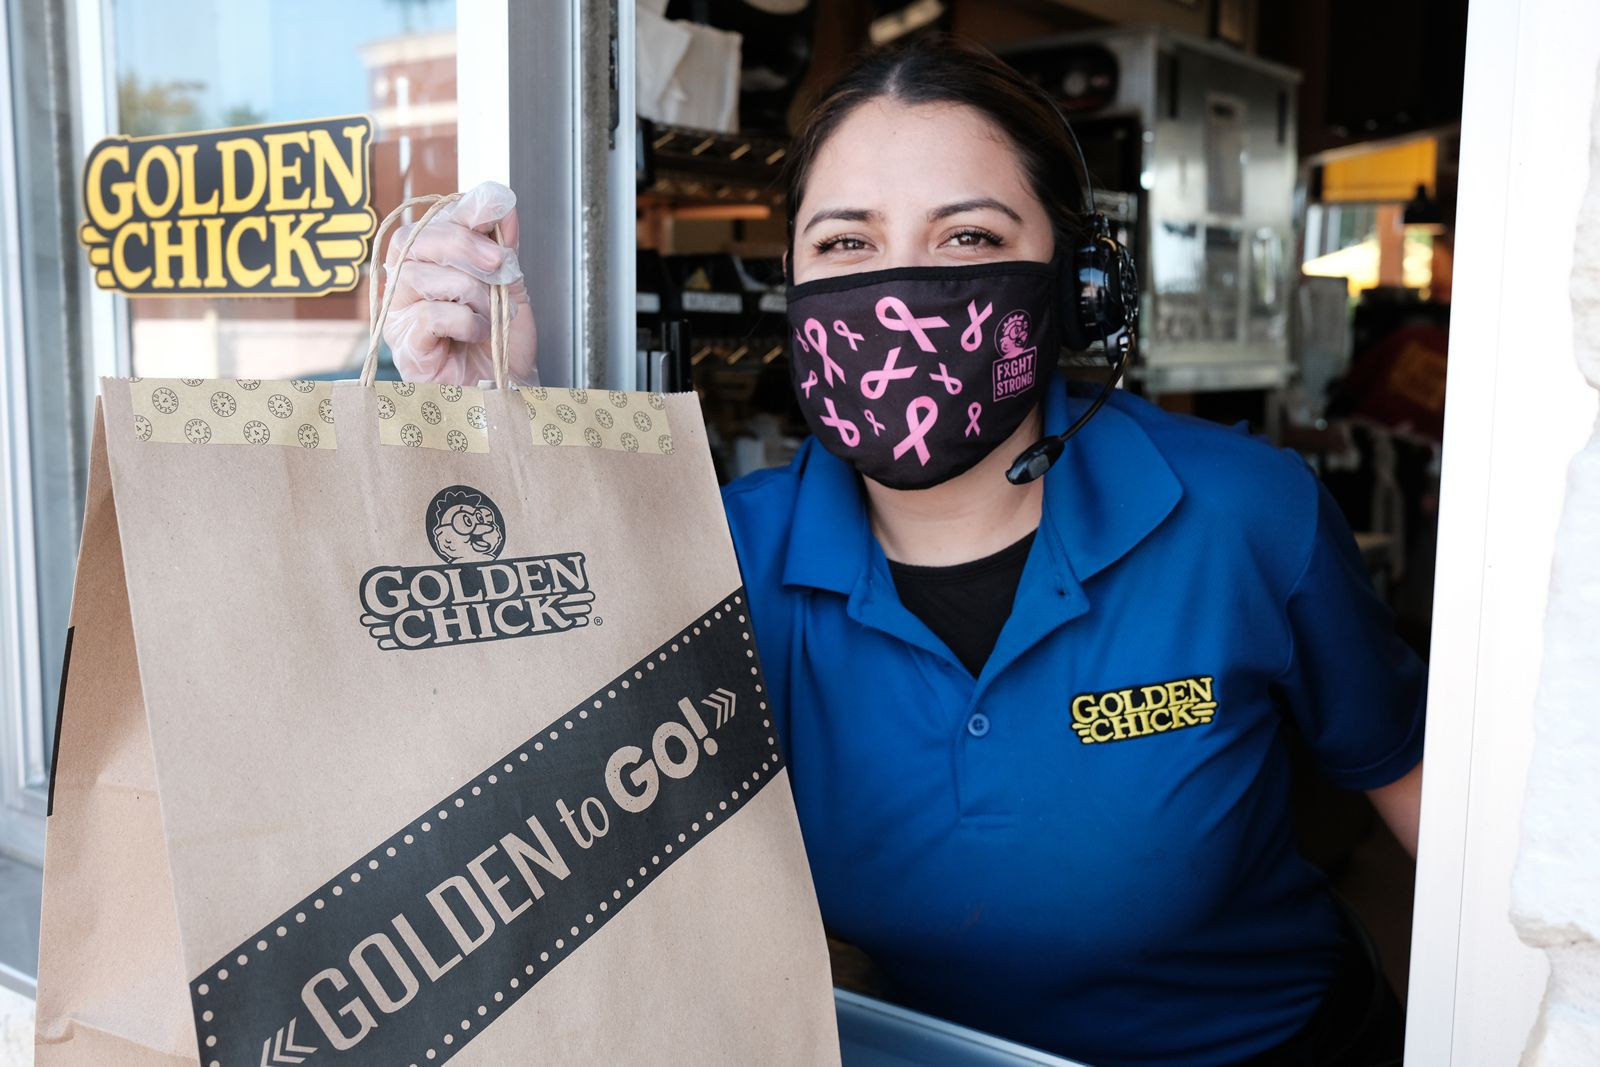 Golden Chick Donates $15,040 To The National Breast Cancer Foundation